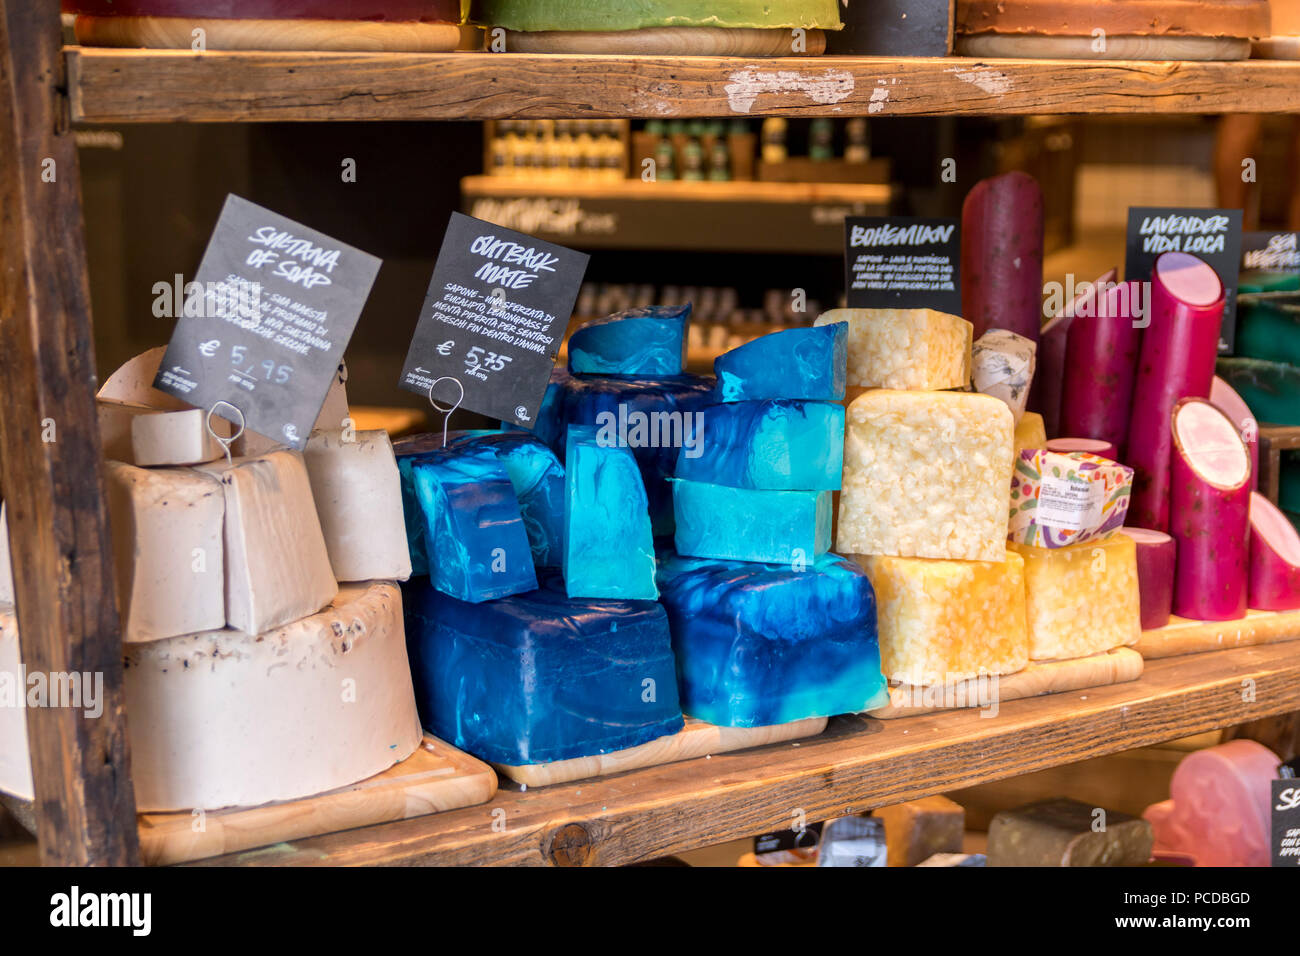 Shop counters display in Lush shop store, Italy - soaps, bubble bath, bath bombs etc lush cosmetics - Stock Image